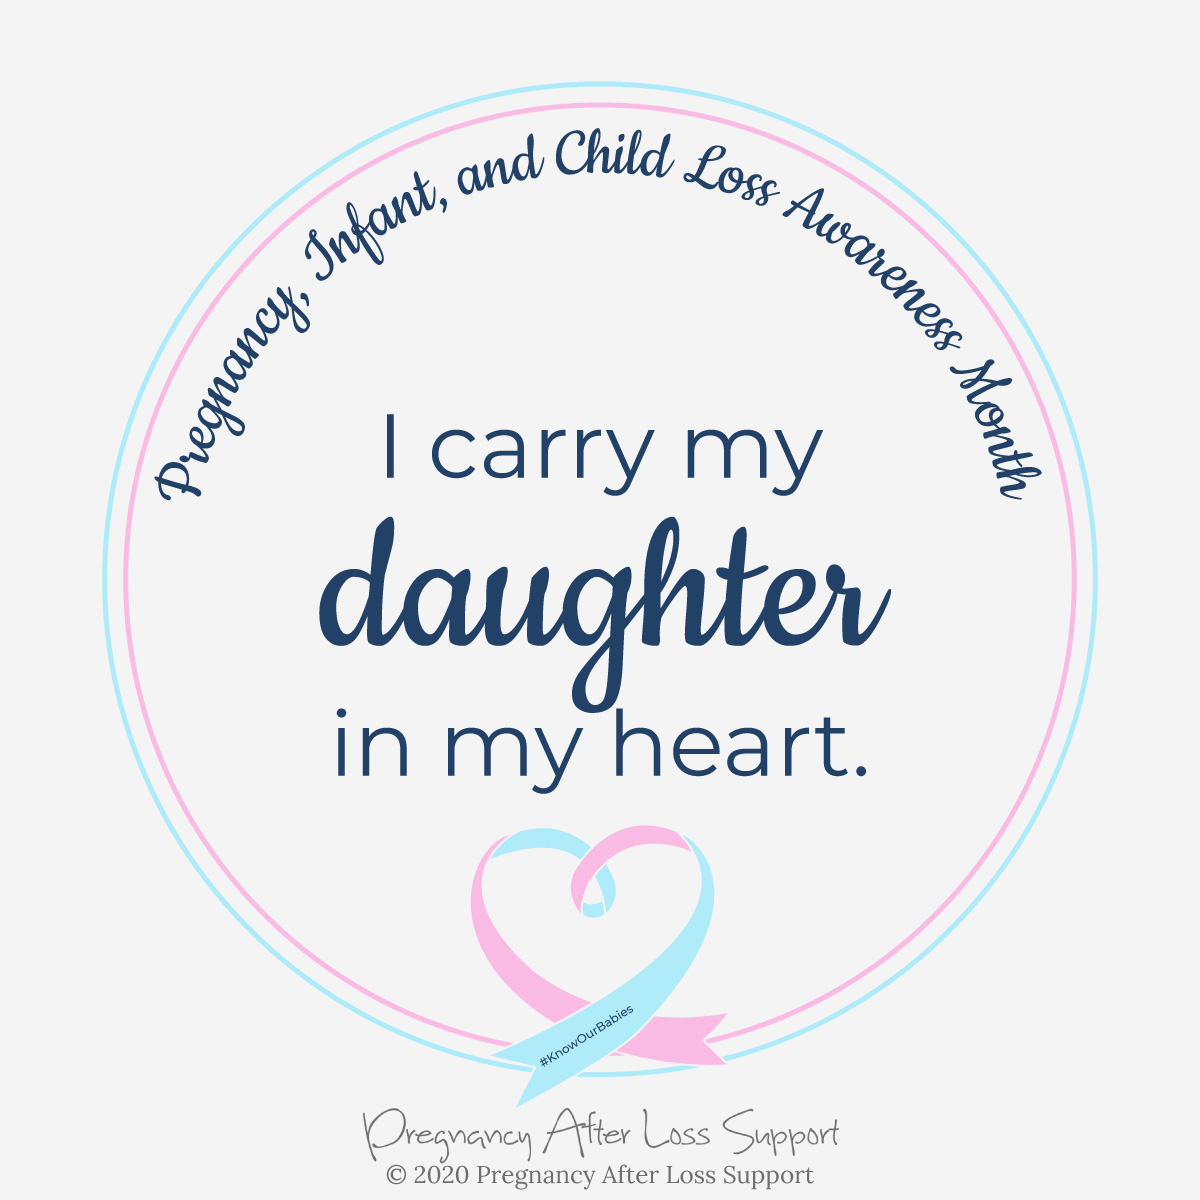 I carry my daughter in my heart - Pregnancy, Infant, and Child Loss Awareness Month